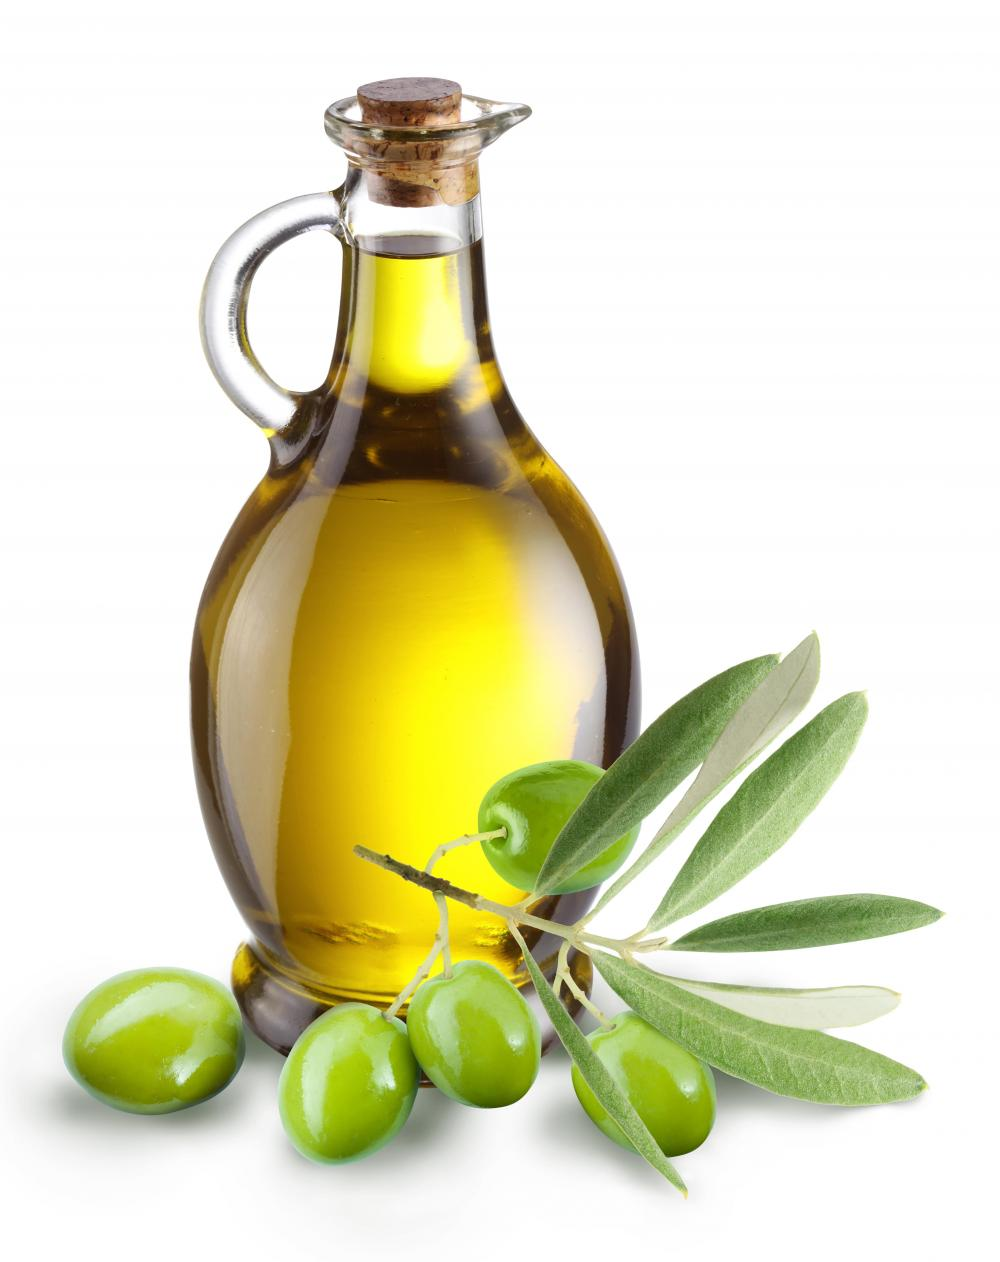 OLIVE OIL when used daily has been shown in many clinical trials to reduce the risk of heart disease sometime as high as 30 %. Its high in monounsaturated fat which helps lower cholesterol and raise HDL cholesterol levels.